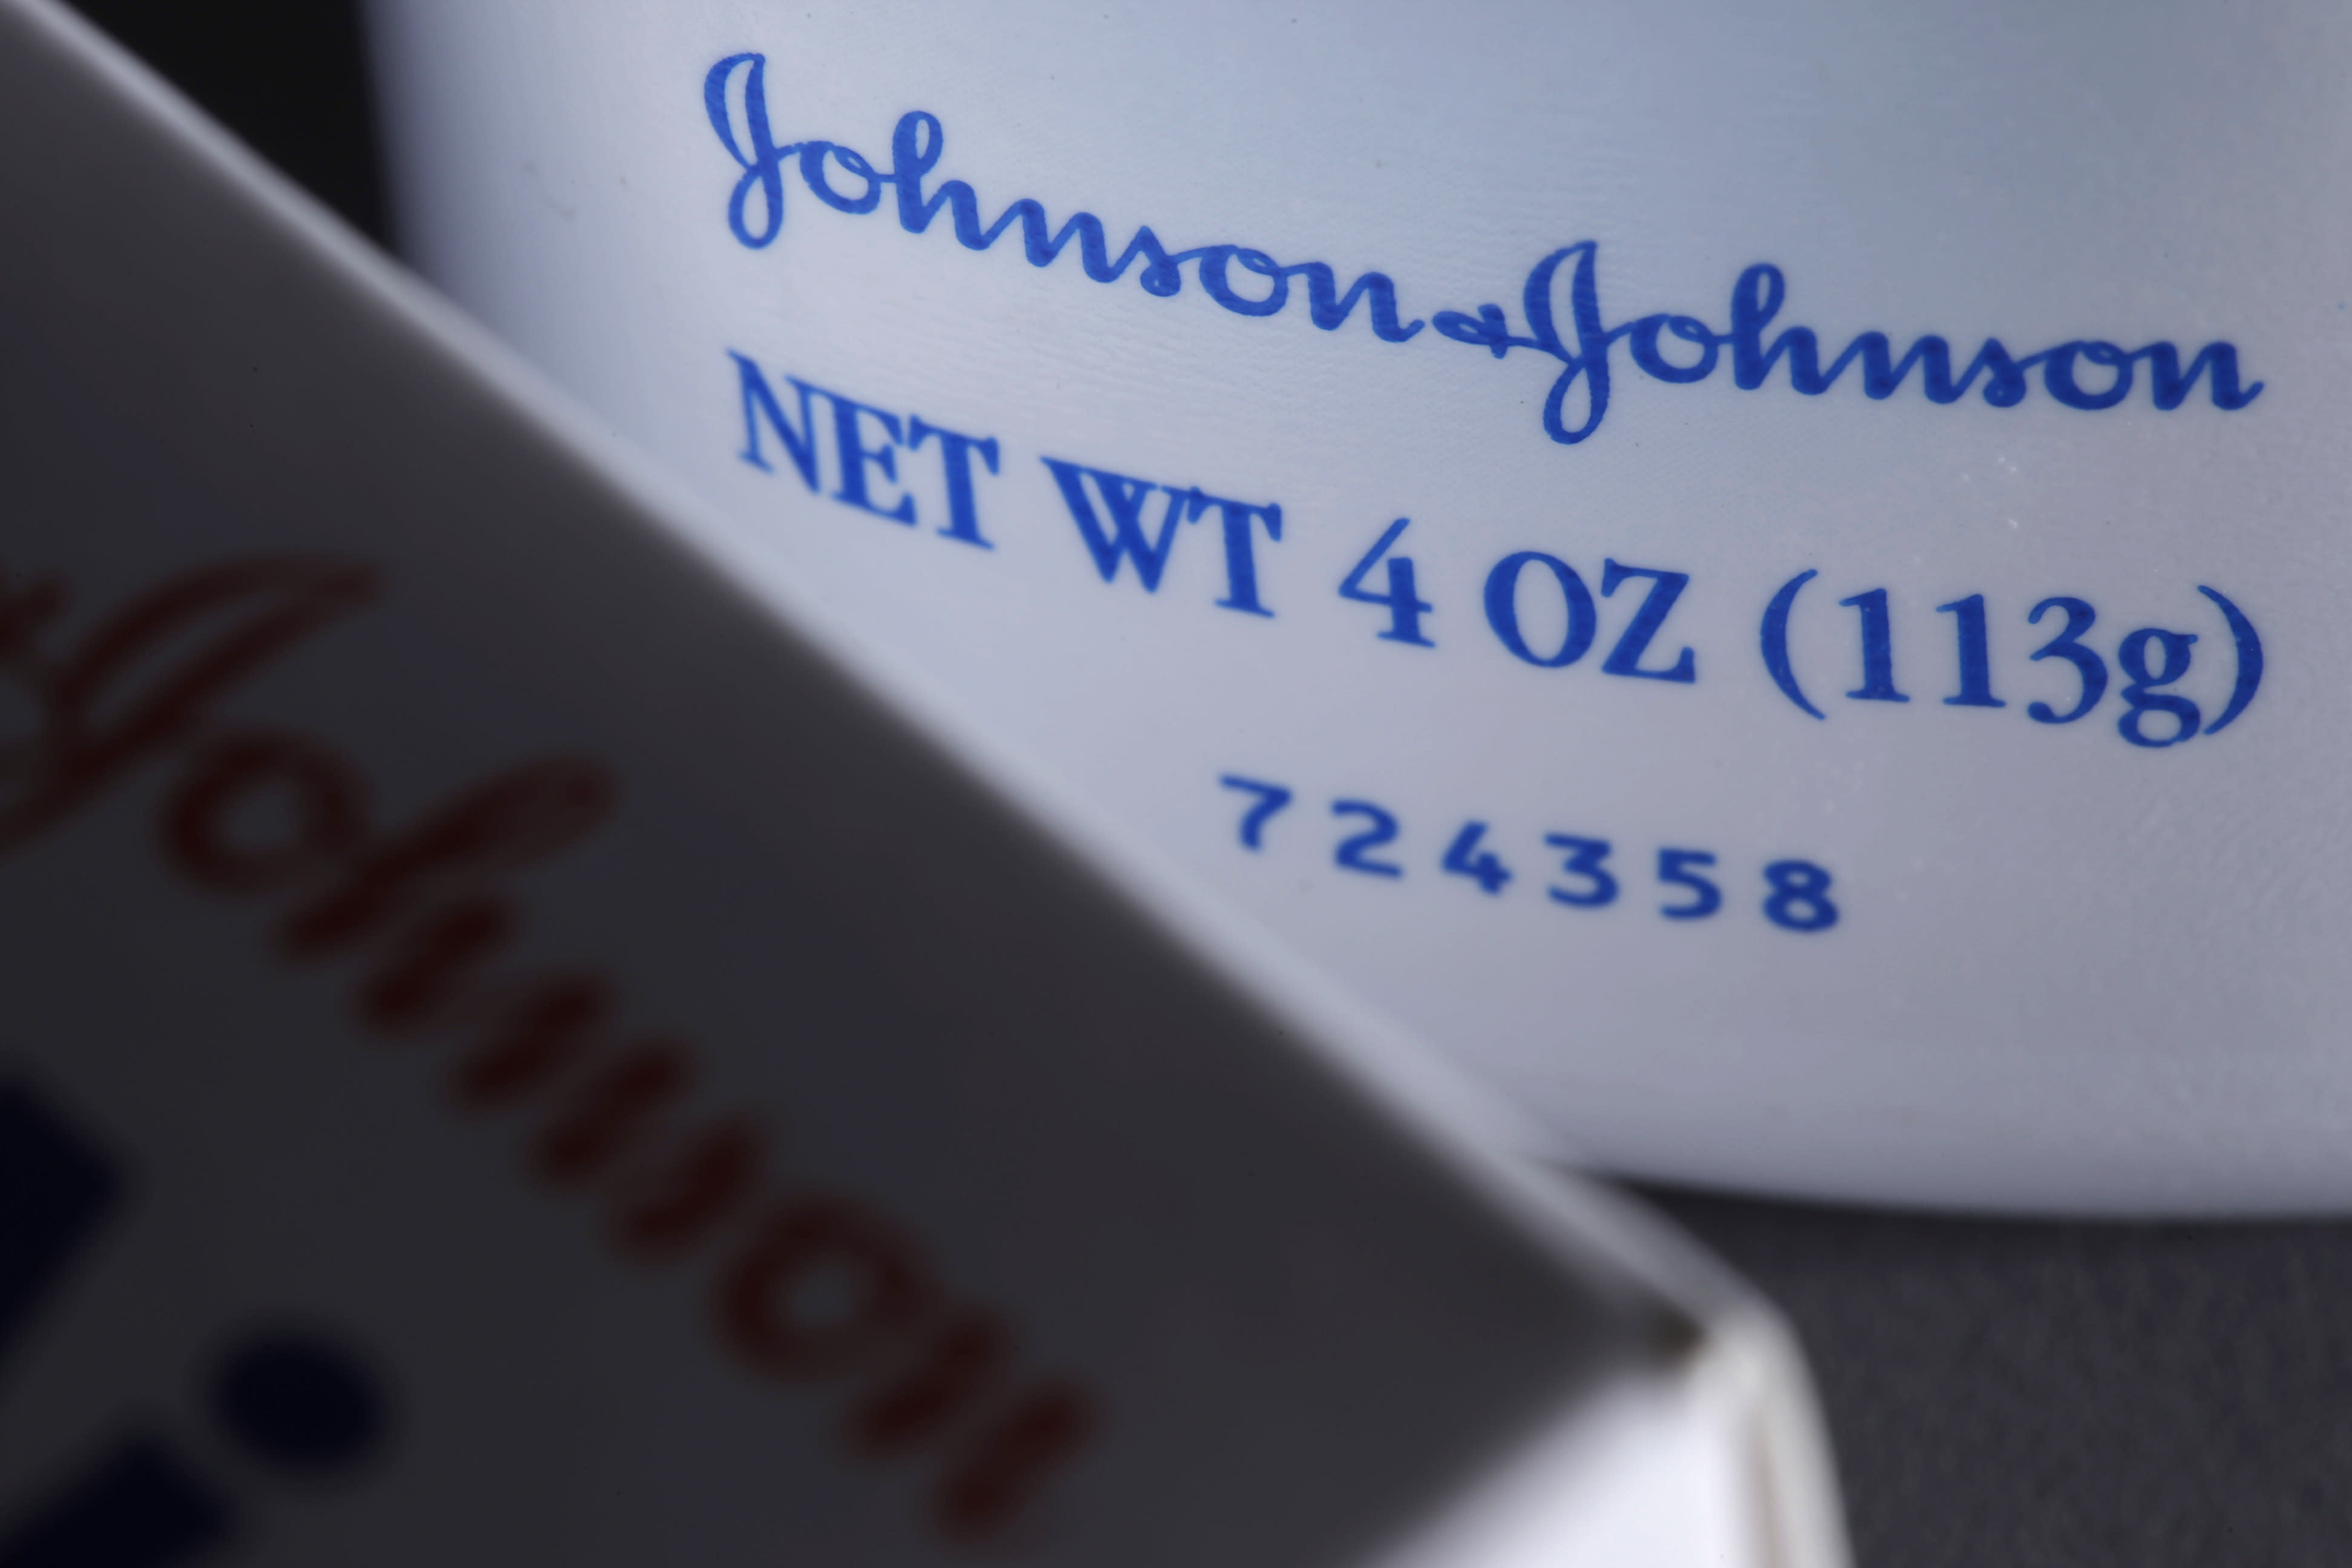 J&J accepts offer from Cardinal Health for Cordis unit